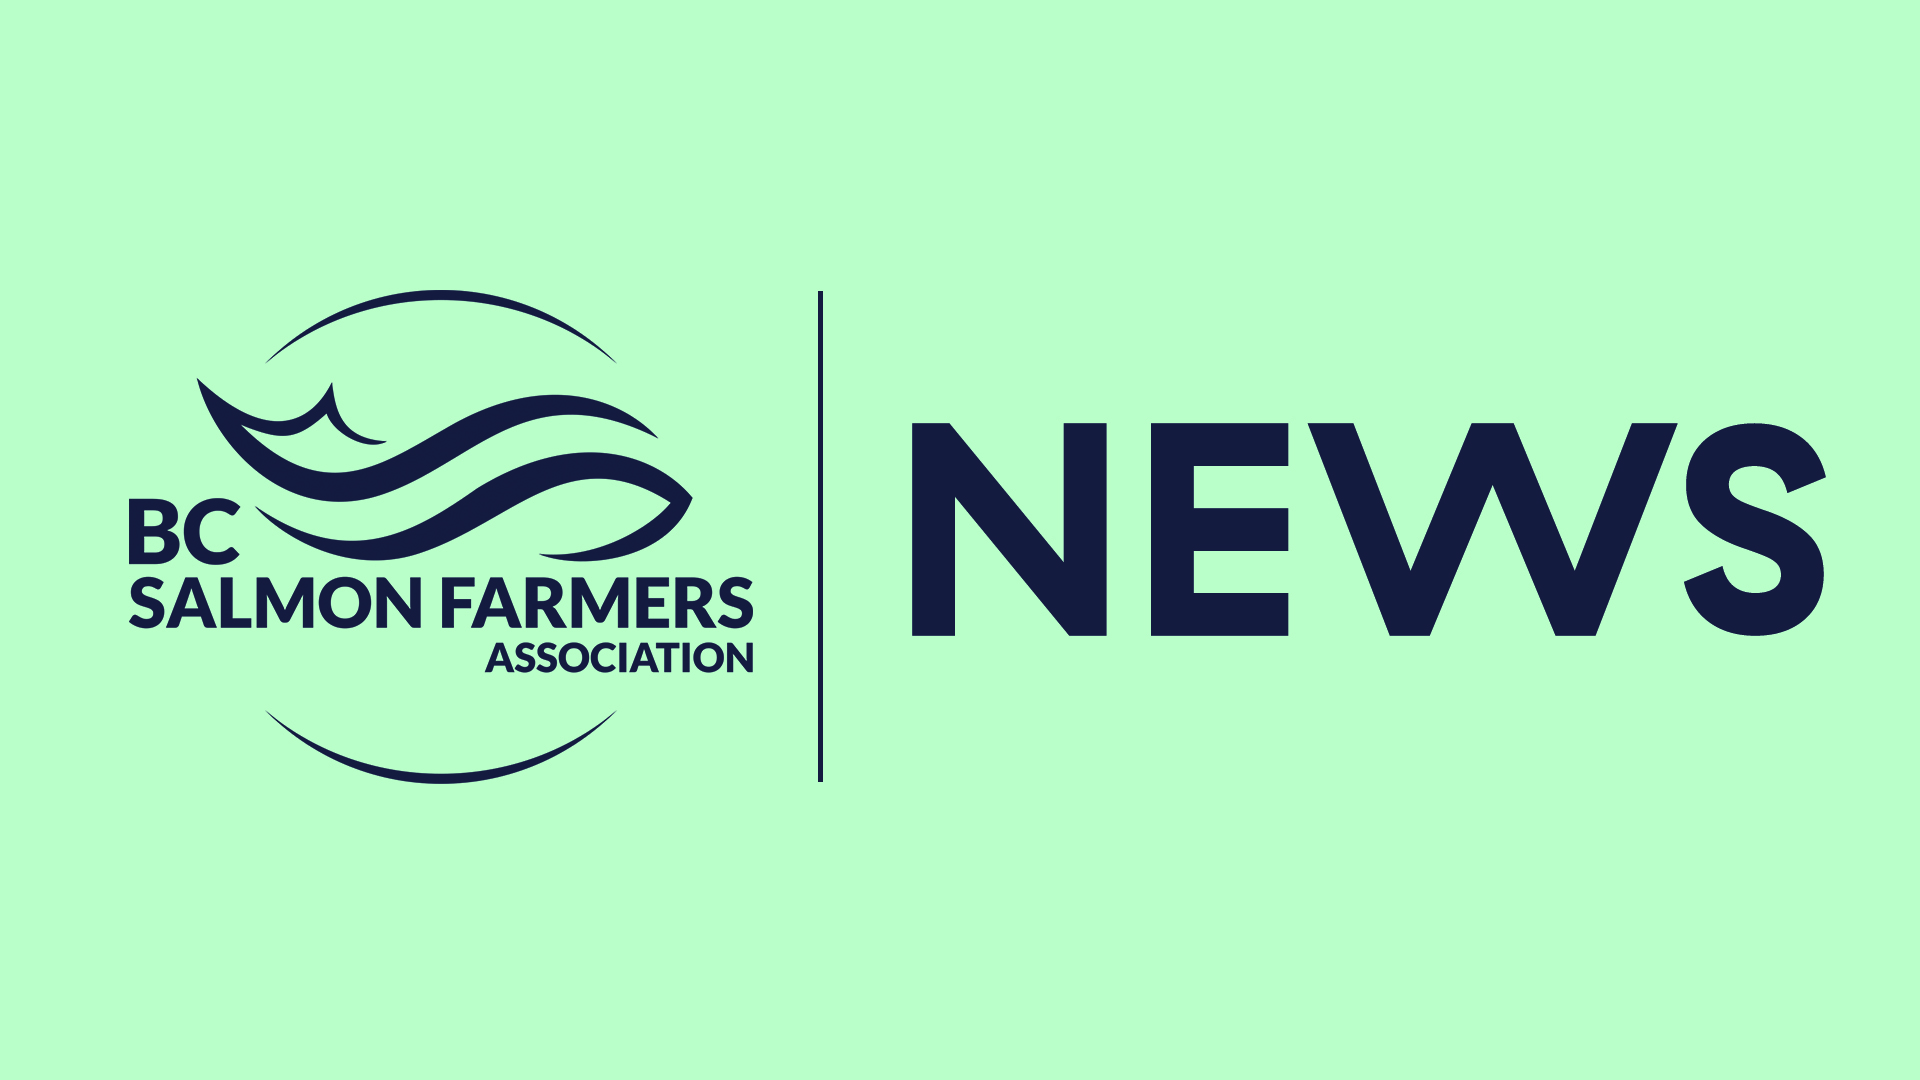 BC Salmon Farmers Association statement regarding federal Liberal minority government